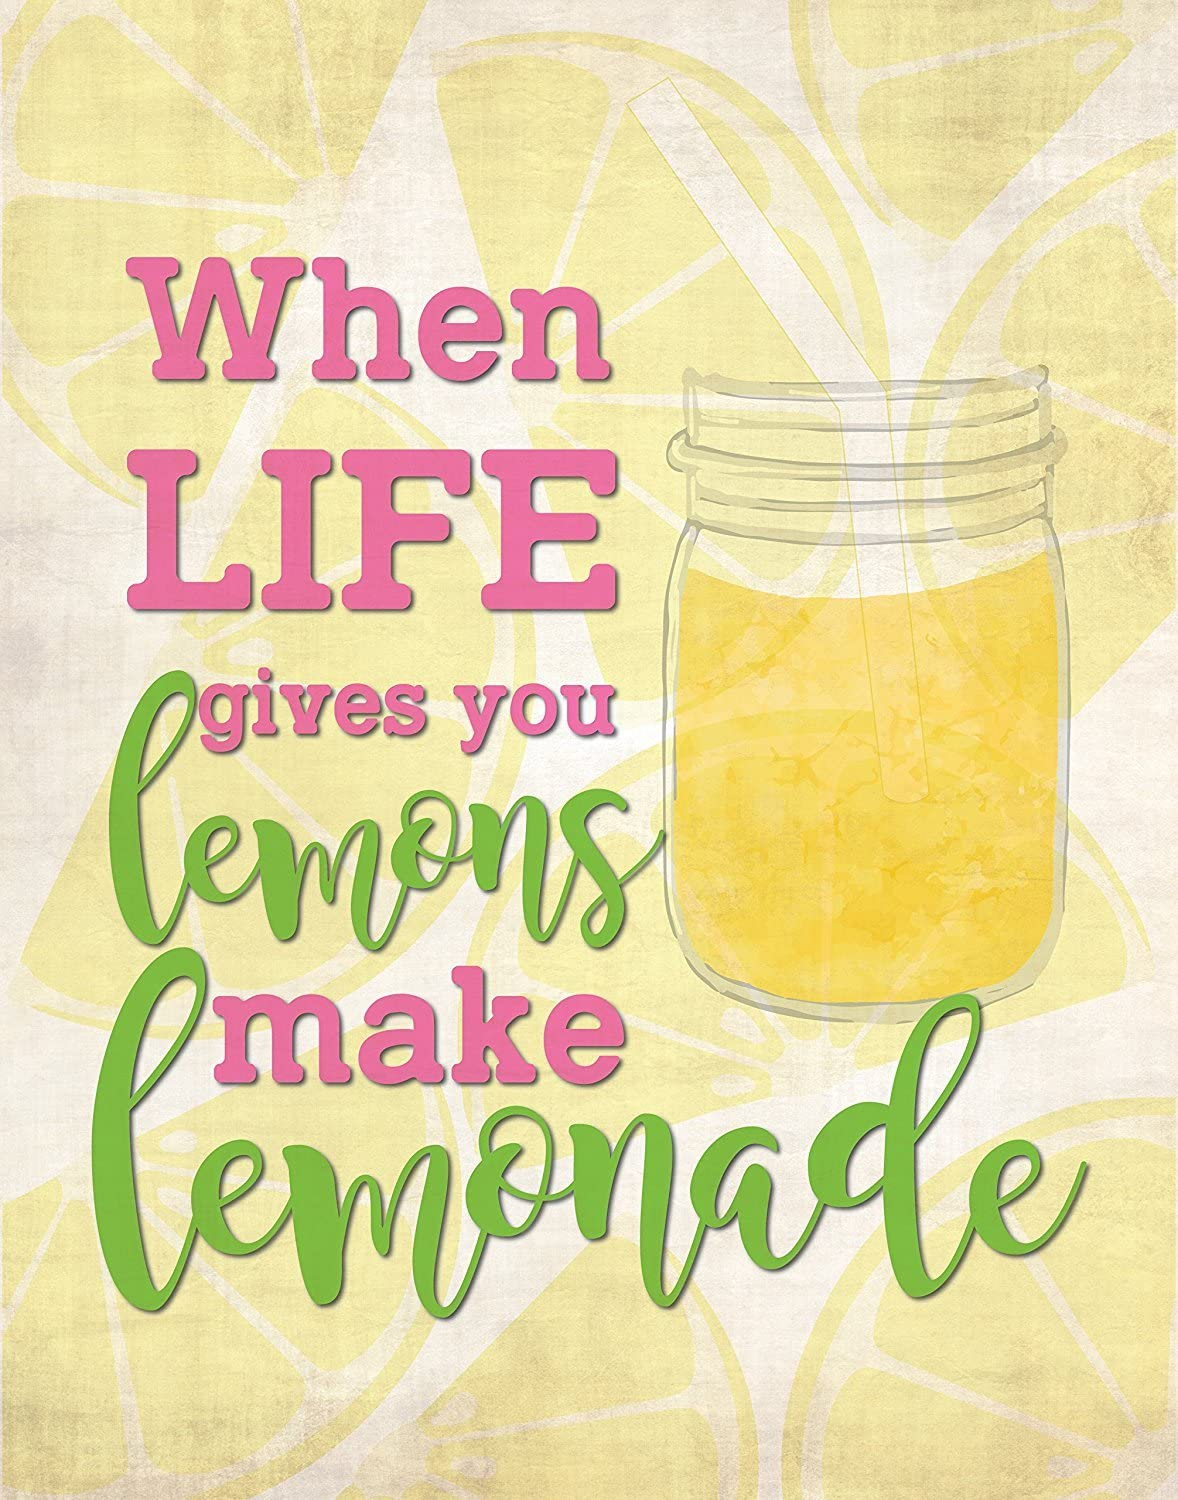 When Life Gives You Lemons, 05x07 Inch Print, Kitchen Wall Art, Motivation Wall Decor, Inspirational Quote Wall Art, Lemon Into Lemonade Print, Lemon Quote, Lemonade Nursery Decor